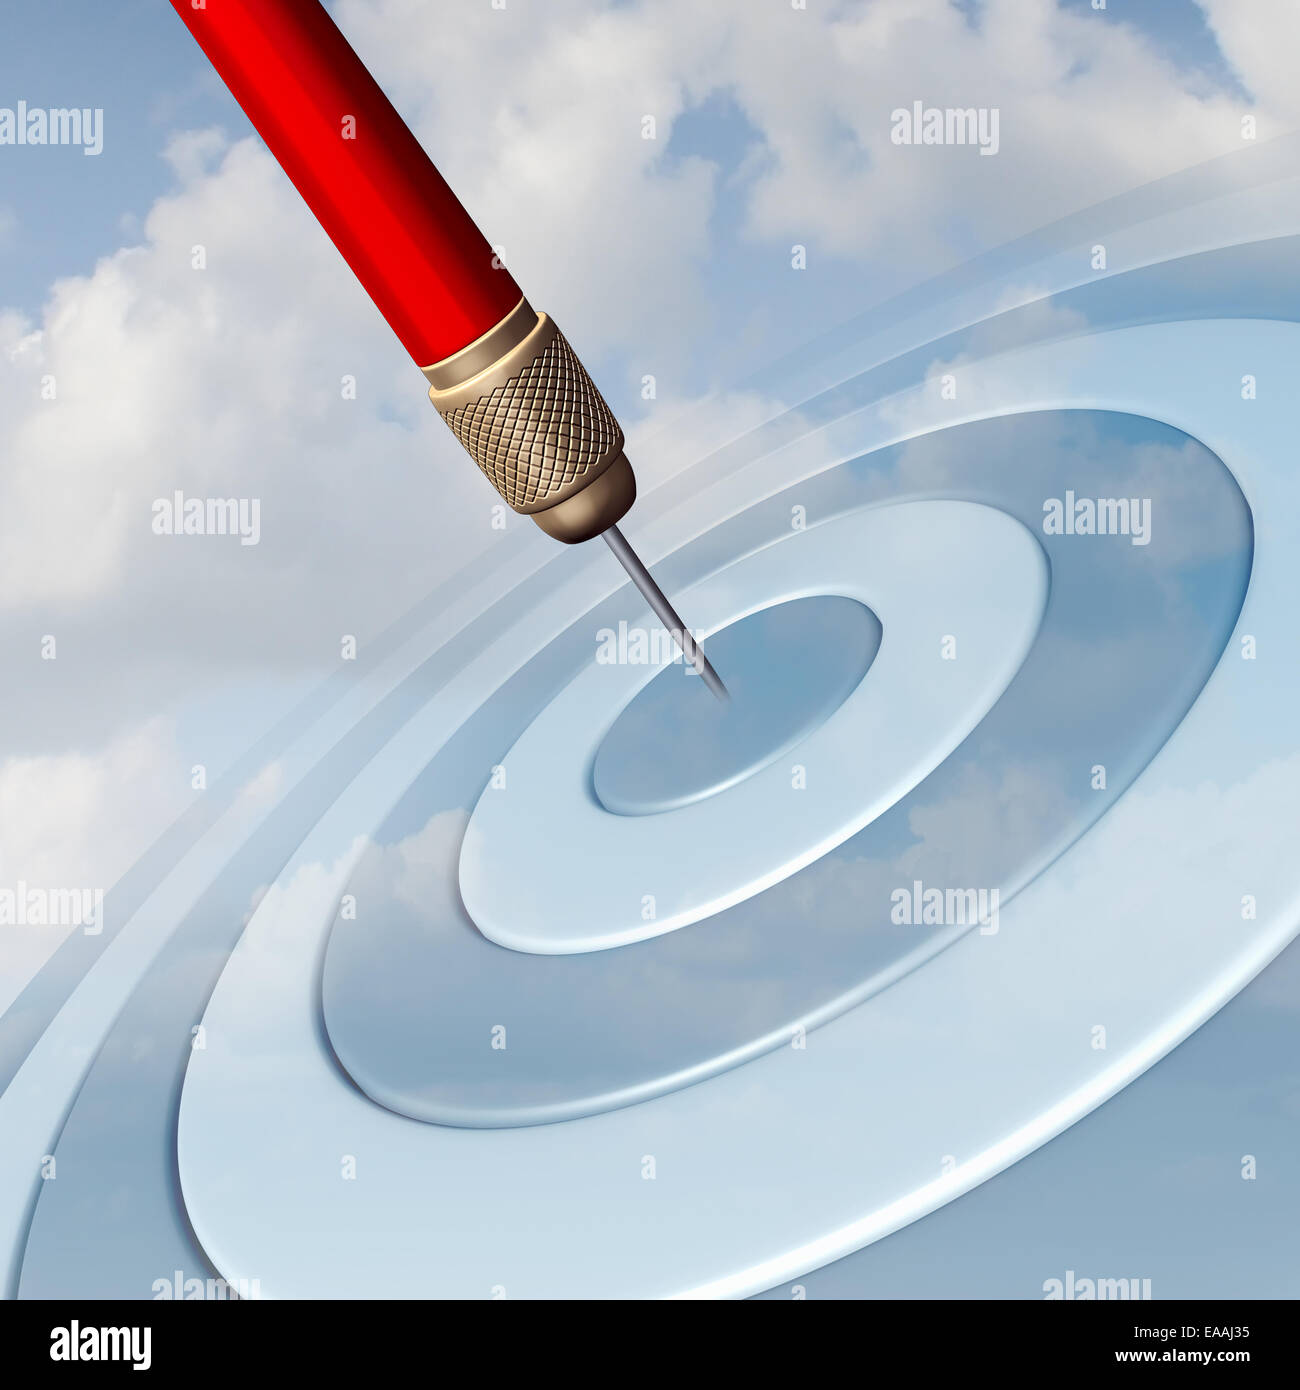 Target Marketing business concept as a red dart hitting the center of a dartboard image in the sky as a success - Stock Image